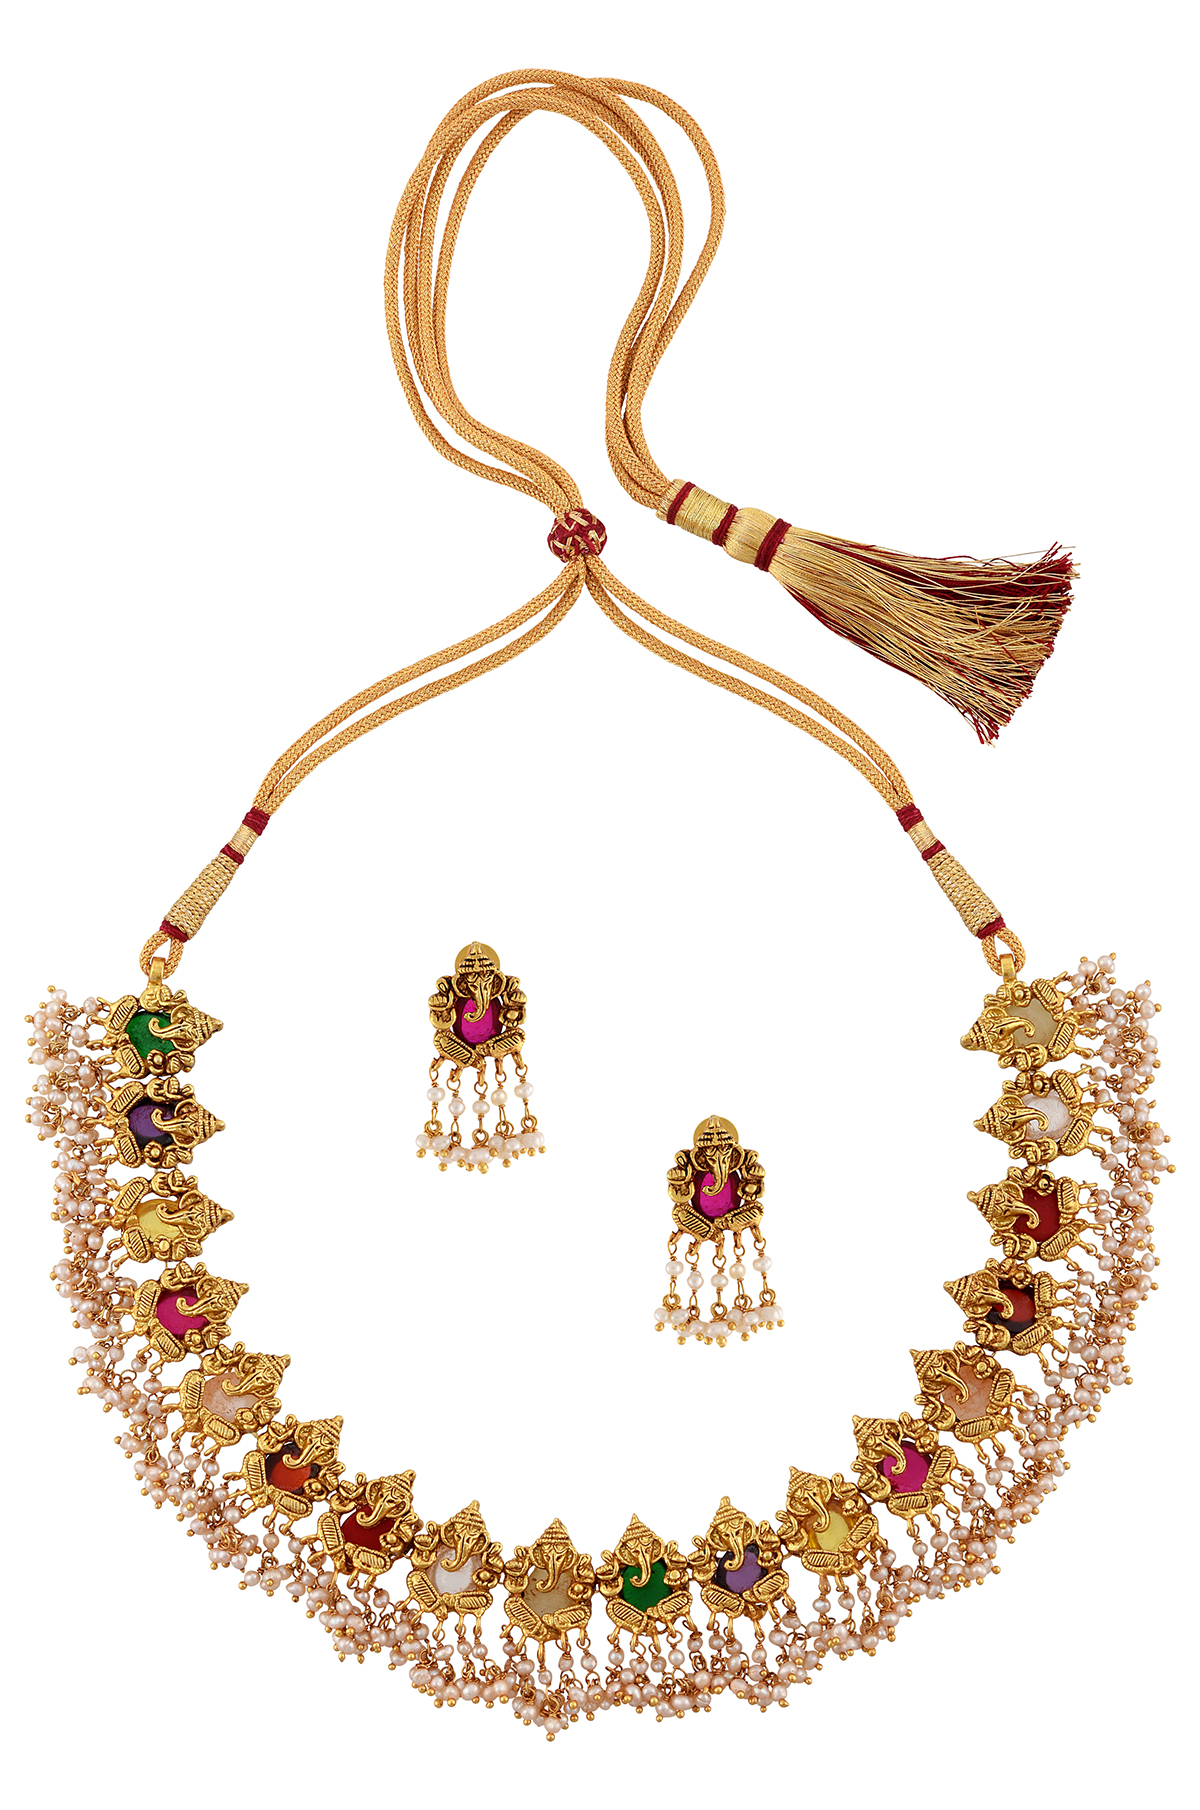 Silver Gold Plated Navratna Glass Pearl Necklace Earrings Set